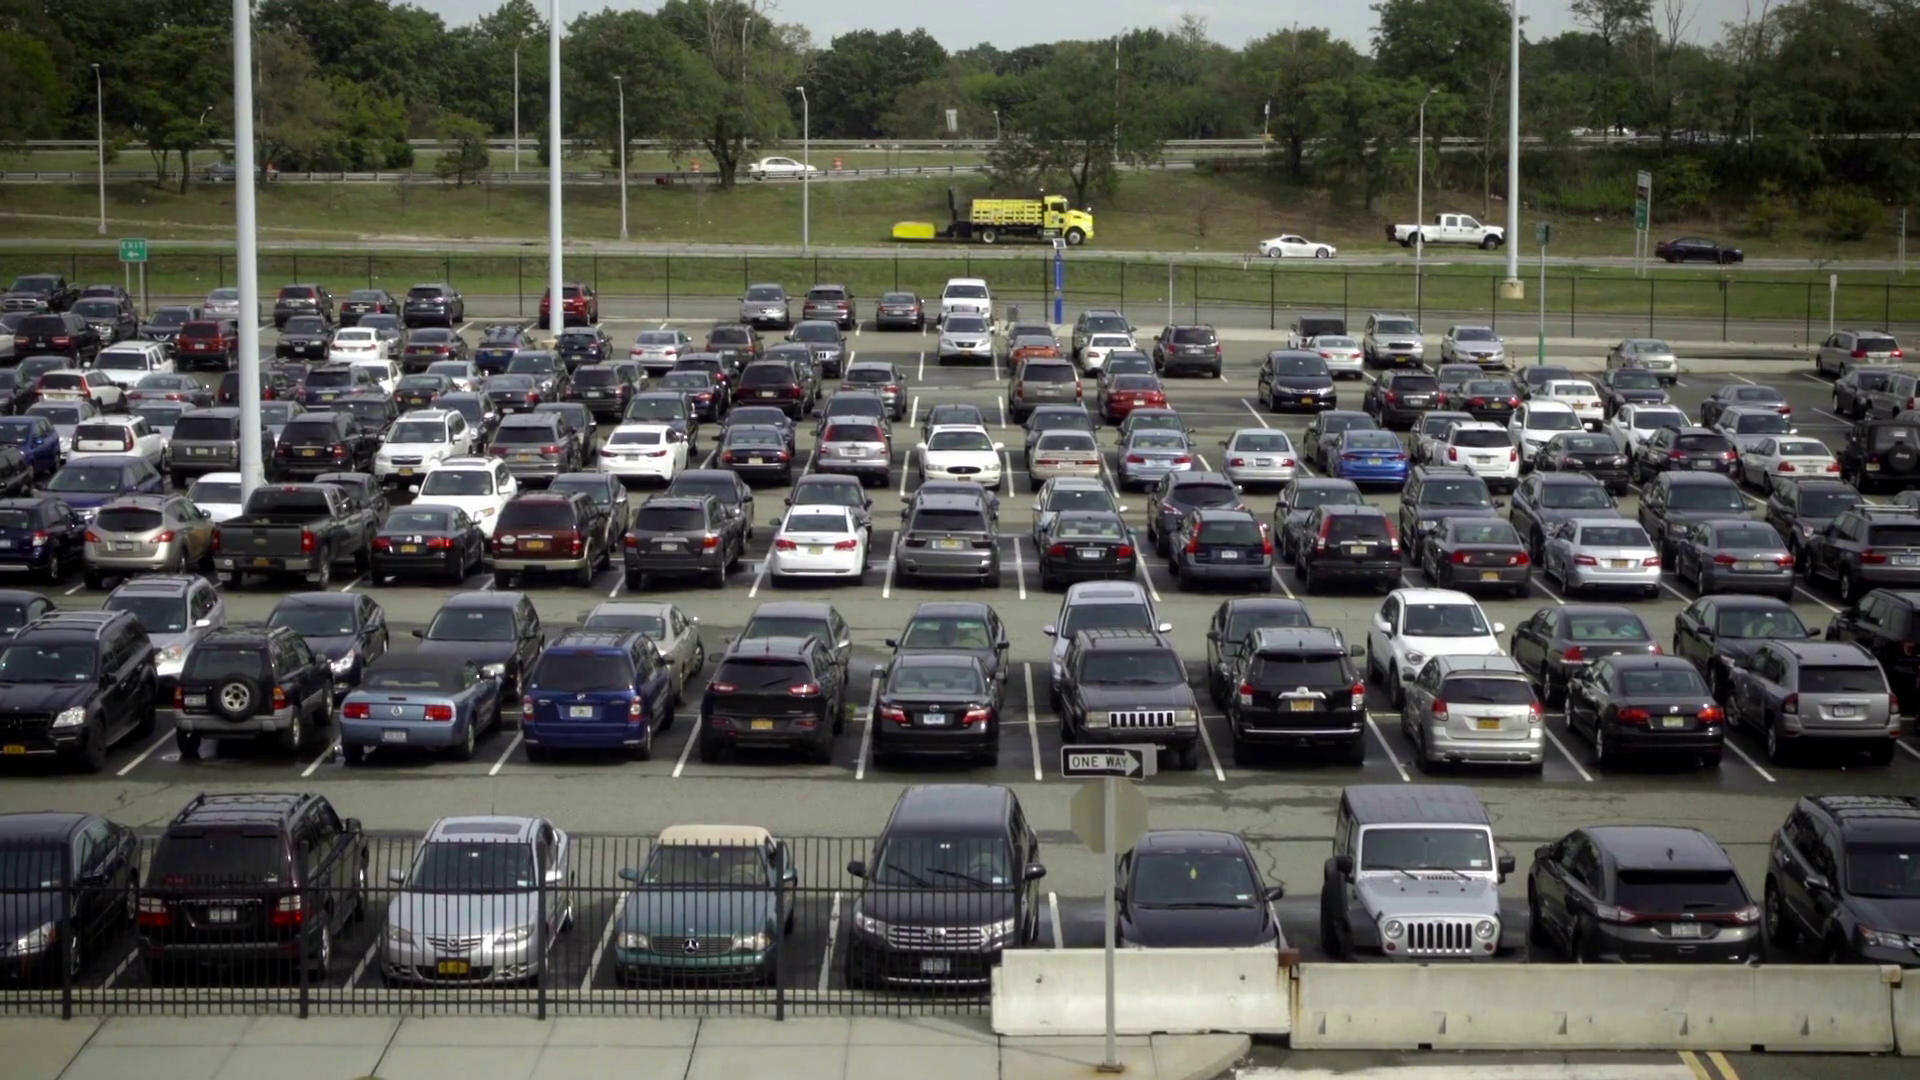 Outdoor Parking Lot Filled With Parked Cars Outside Stock Video Footage -  VideoBlocks - Parking Lot PNG HD